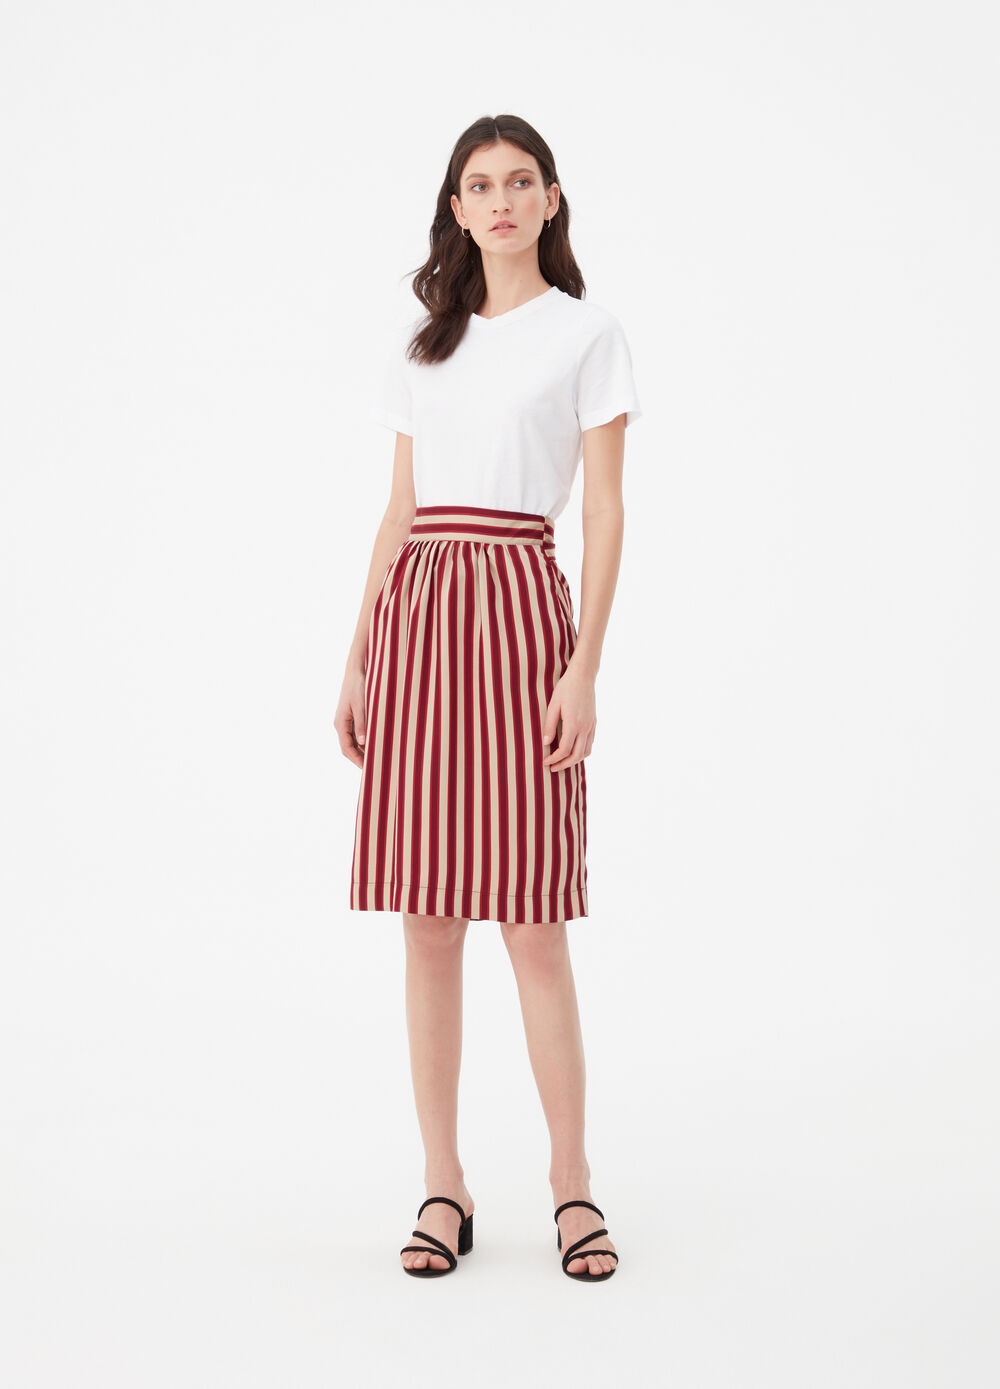 Skirt with striped knotted belt